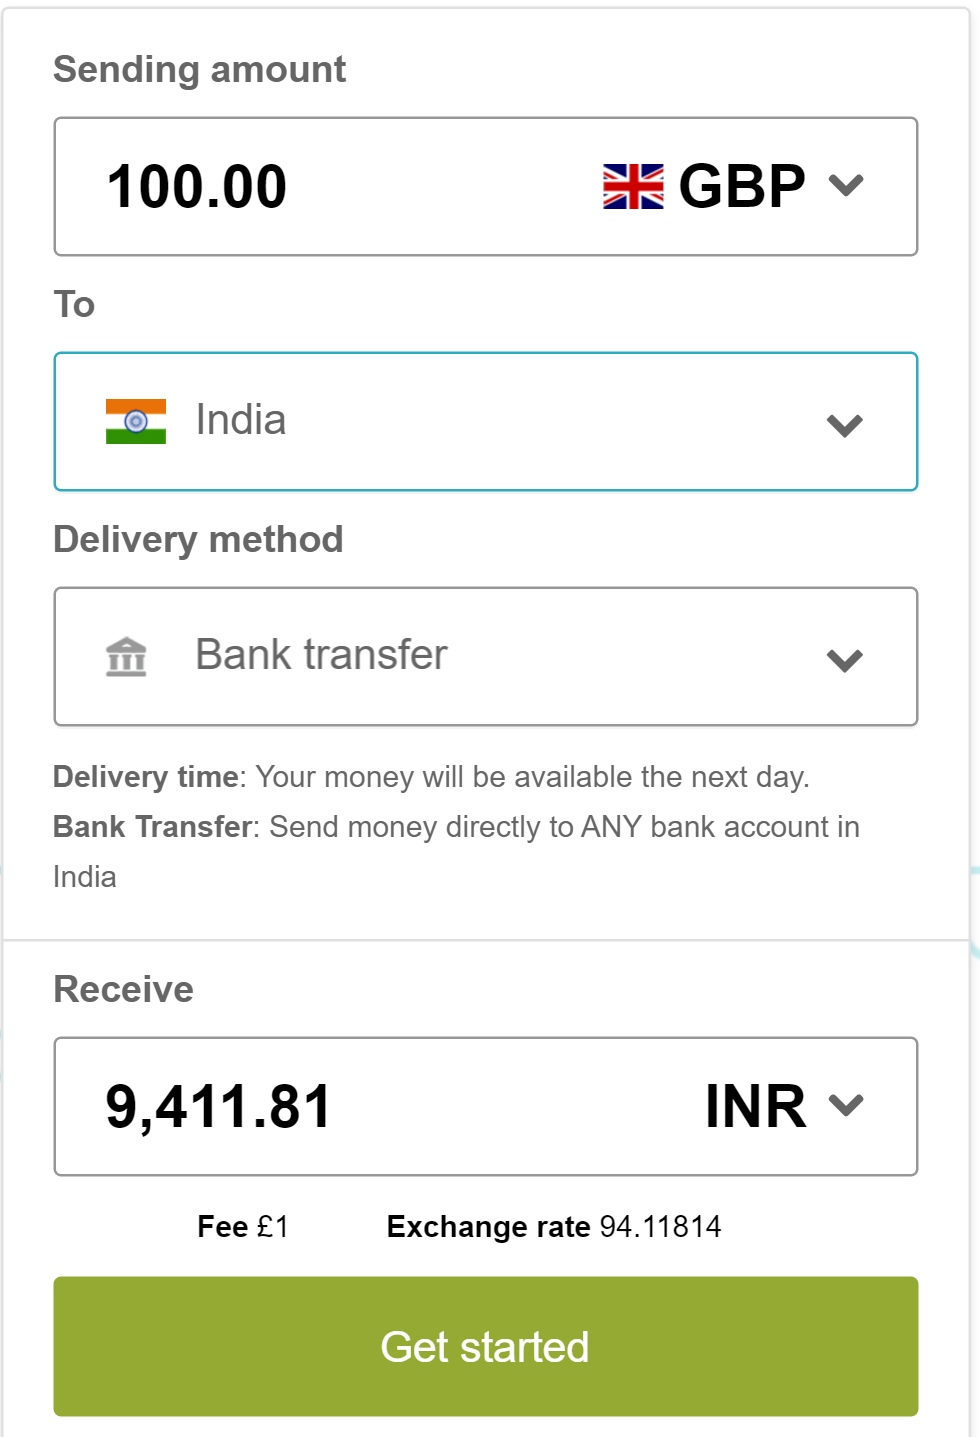 Comparison Of Western Union And Azimo Sending 100gbp From Uk To India Via Bank Transfer